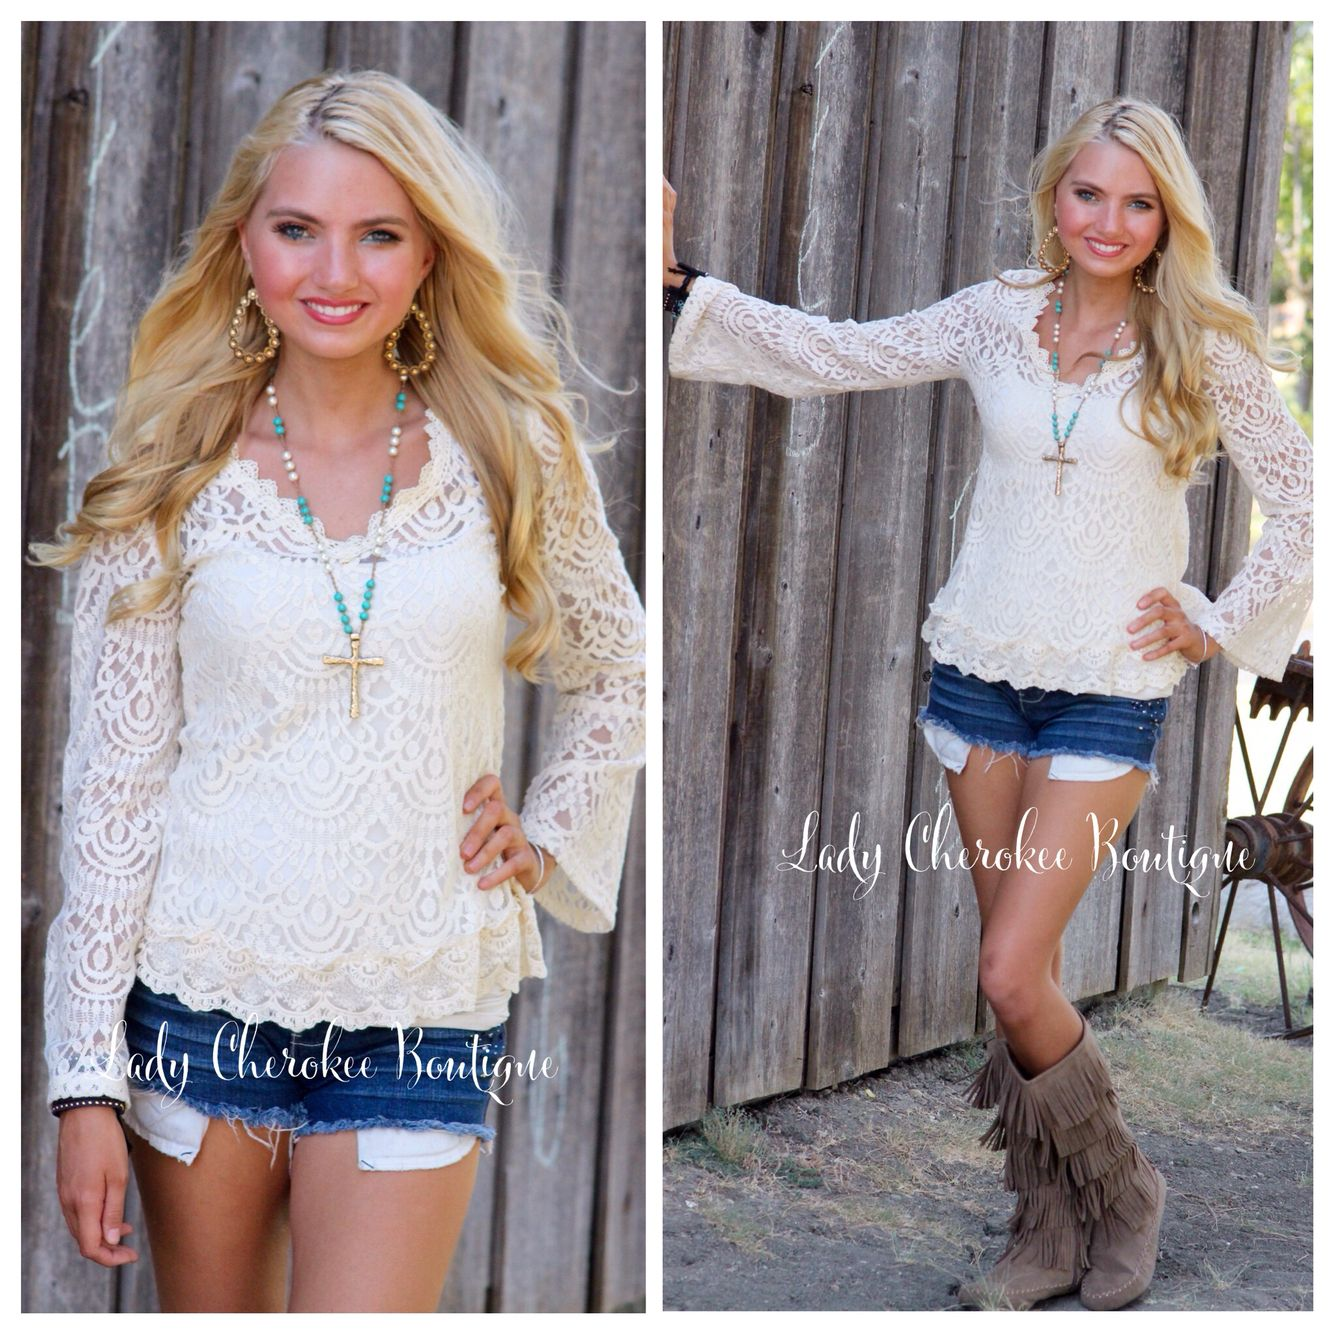 Here You Come Again IVORY LACE DETAIL FLARE SLEEVE TOP  Price: $34.00, FREE SHIPPING  #lace #top #womensfashion #ladycherokeeboutique